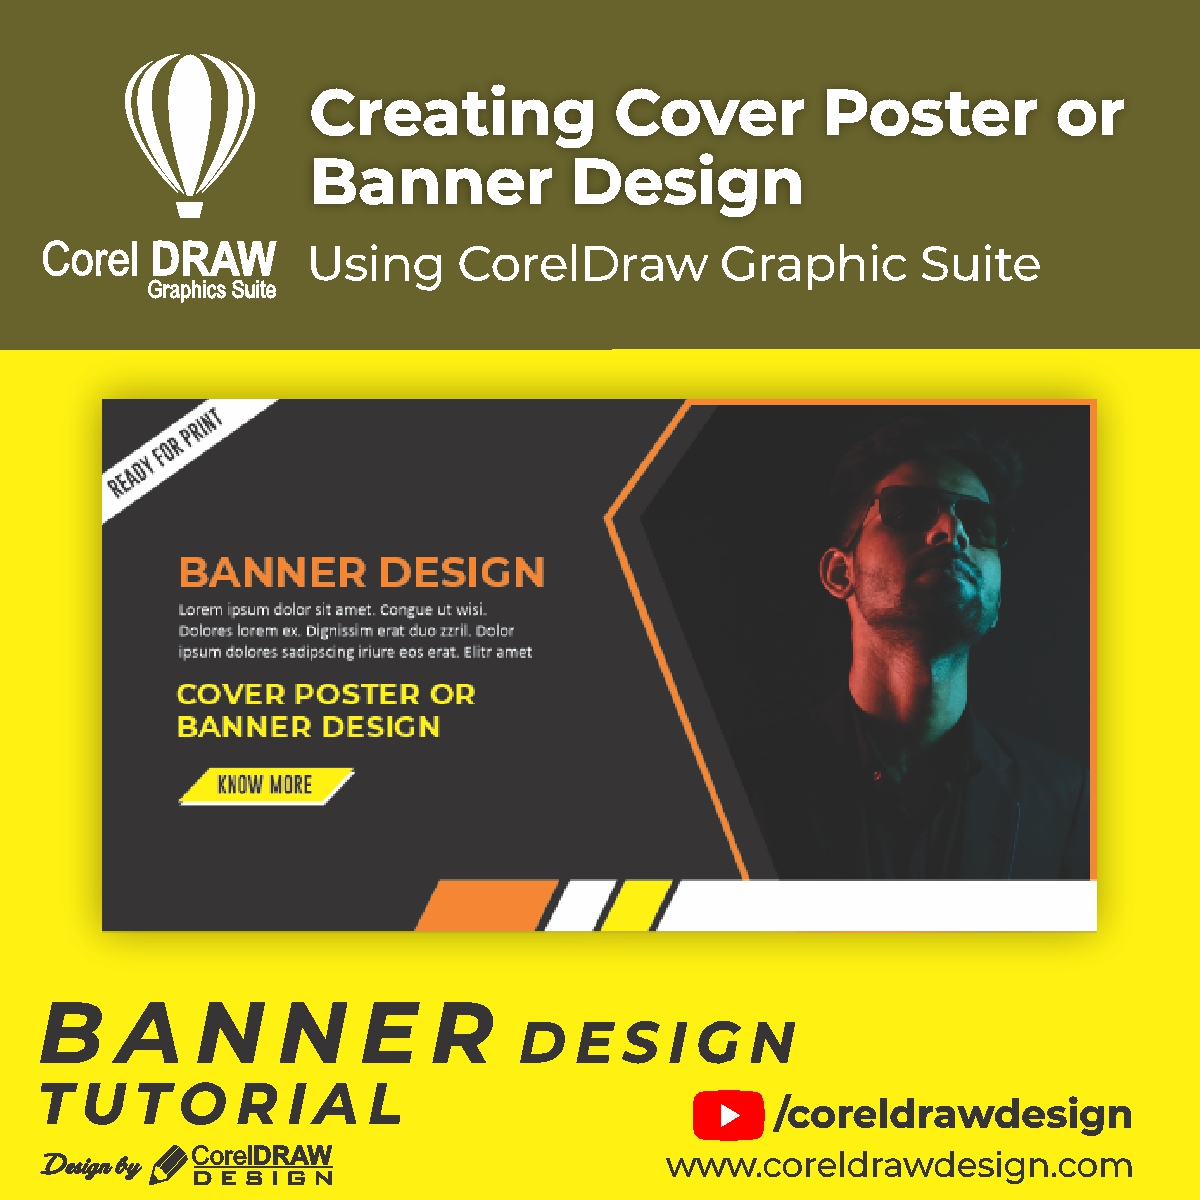 Creating Cover Post or Banner Design Digital Graphics Tutorial Coreldraw for Beginners